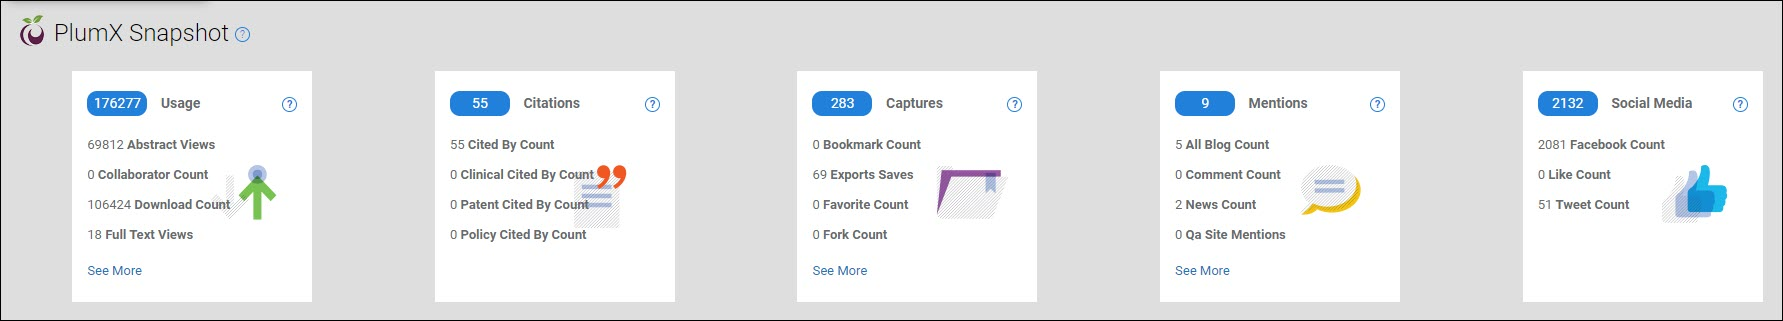 The PlumX Snapshot bar showing the five PlumX categories: Usage, Citations, Captures, Mentions, and Social Media